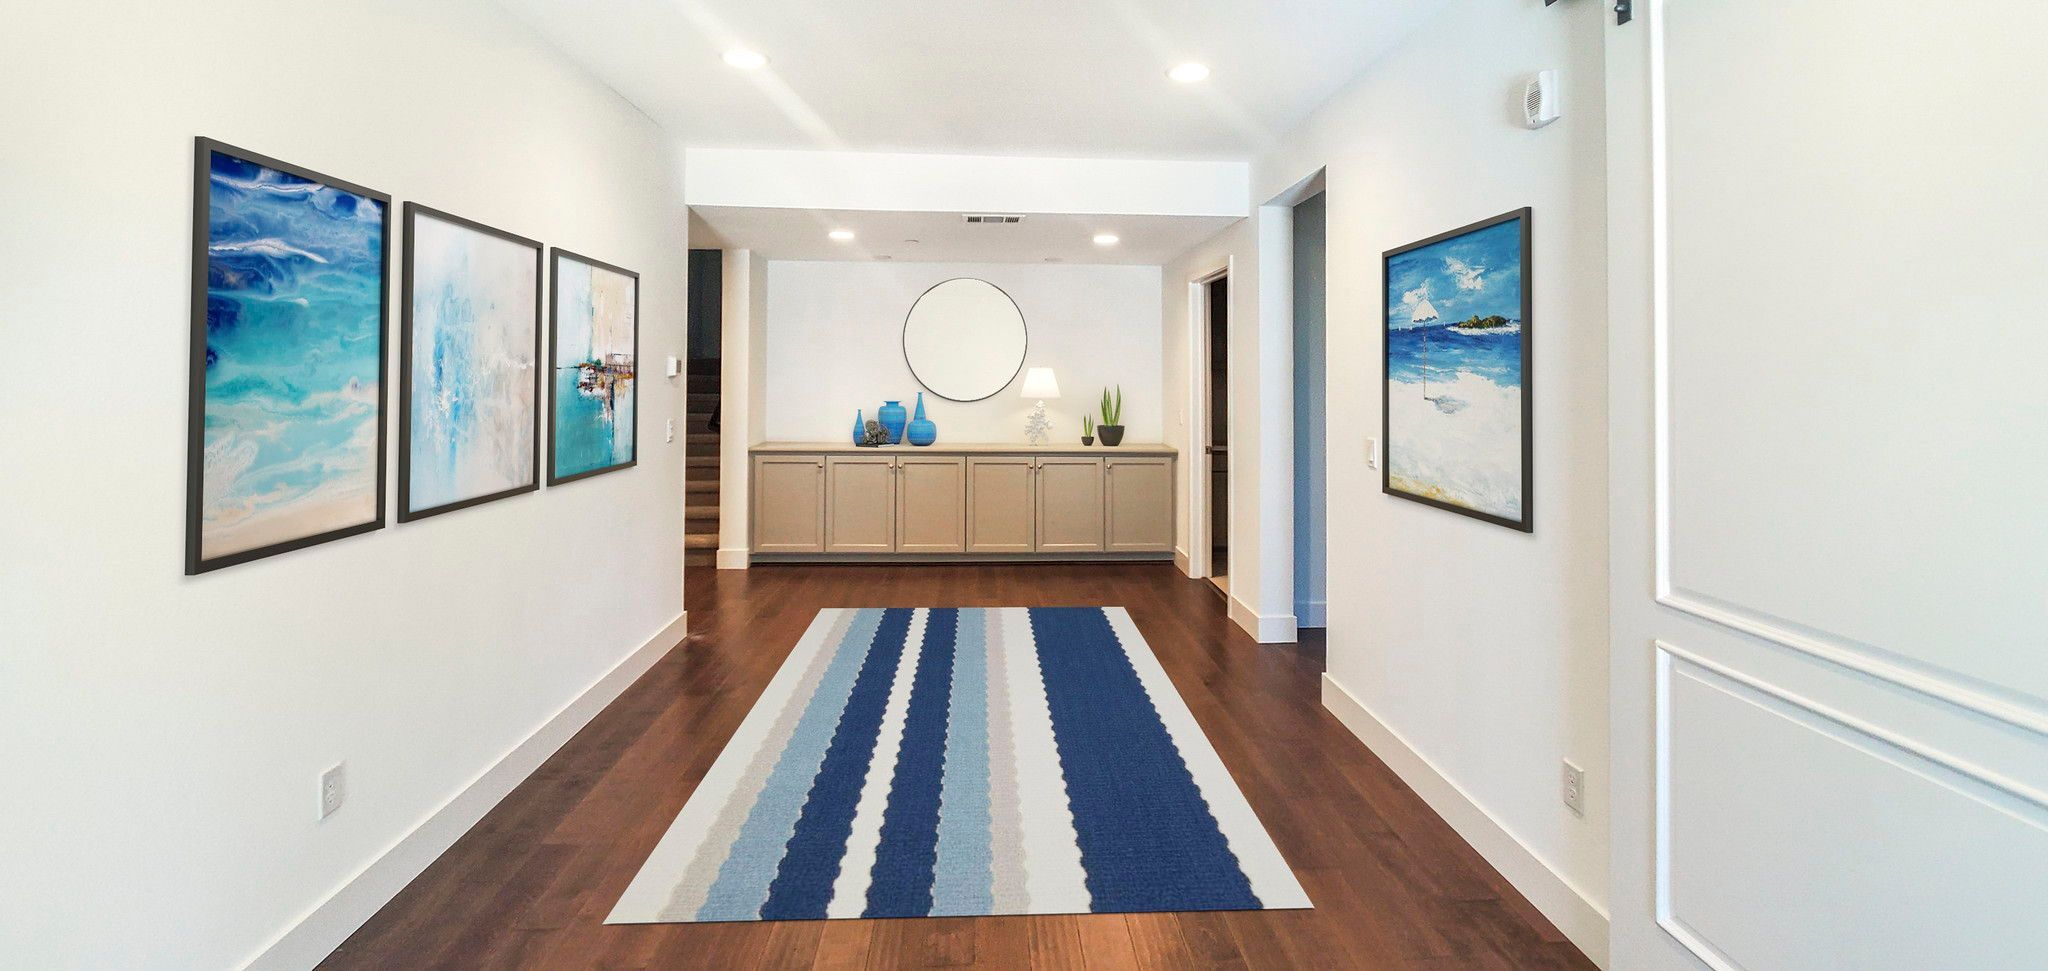 Waterline in Point Richmond, CA by Shea Homes | Residence 4 Entry  #SheaHomes #SheaHomesNorCal #SheaHomeowners #SheaNorCal #LiveTheSheaDifference #NorCalHomes #NorCalRealEstate #BayAreaRealEstate #BayAreaNewHomes #HomeDesignInspiration #HomeInspiration #Waterline #PointRichmond Sales: Shea Homes Marketing Company (CalDRE #01378646); Construction: Shea Homes Limited Partnership (CSLB #855368). Equal Housing Opportunity.